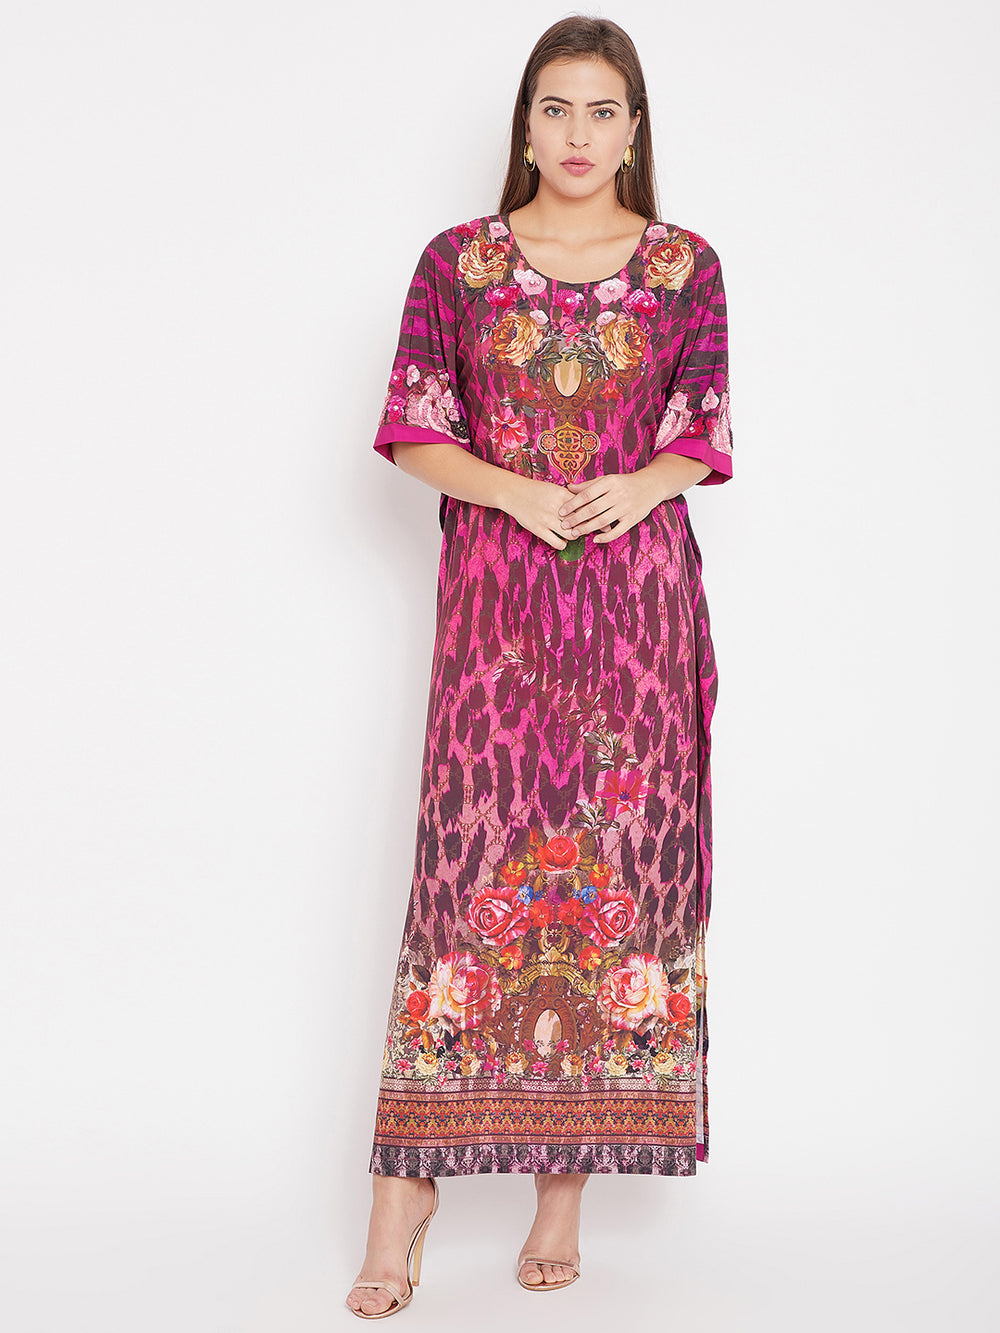 Dazzled Flora Serengeti Maxi Dress